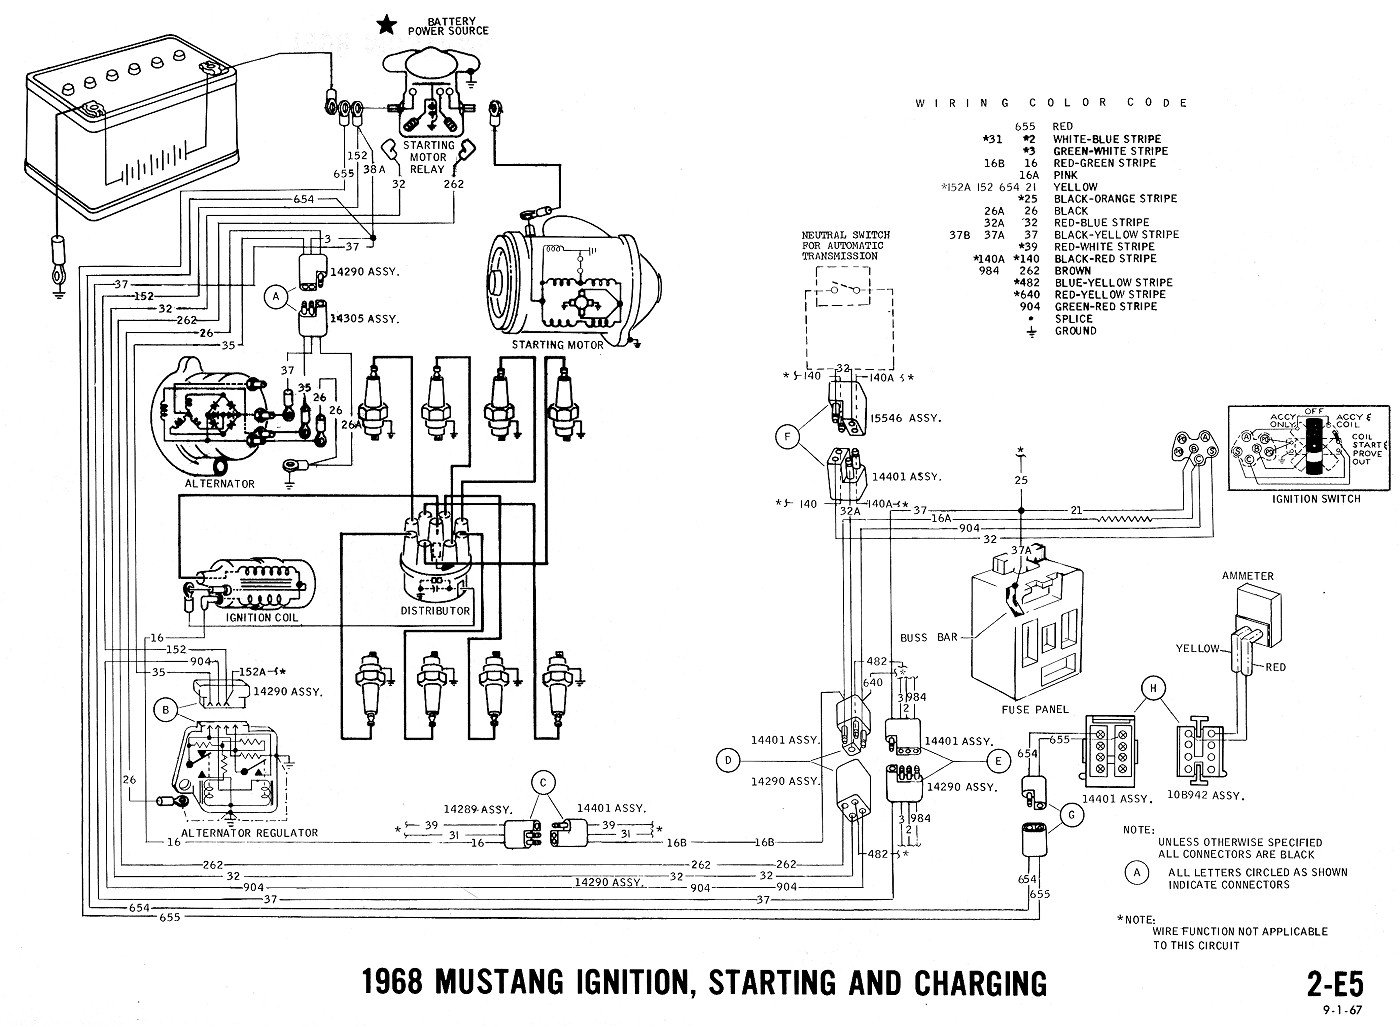 1968 F100 Wiring Diagram - Wiring Diagram K9 F Wiring Schematics on